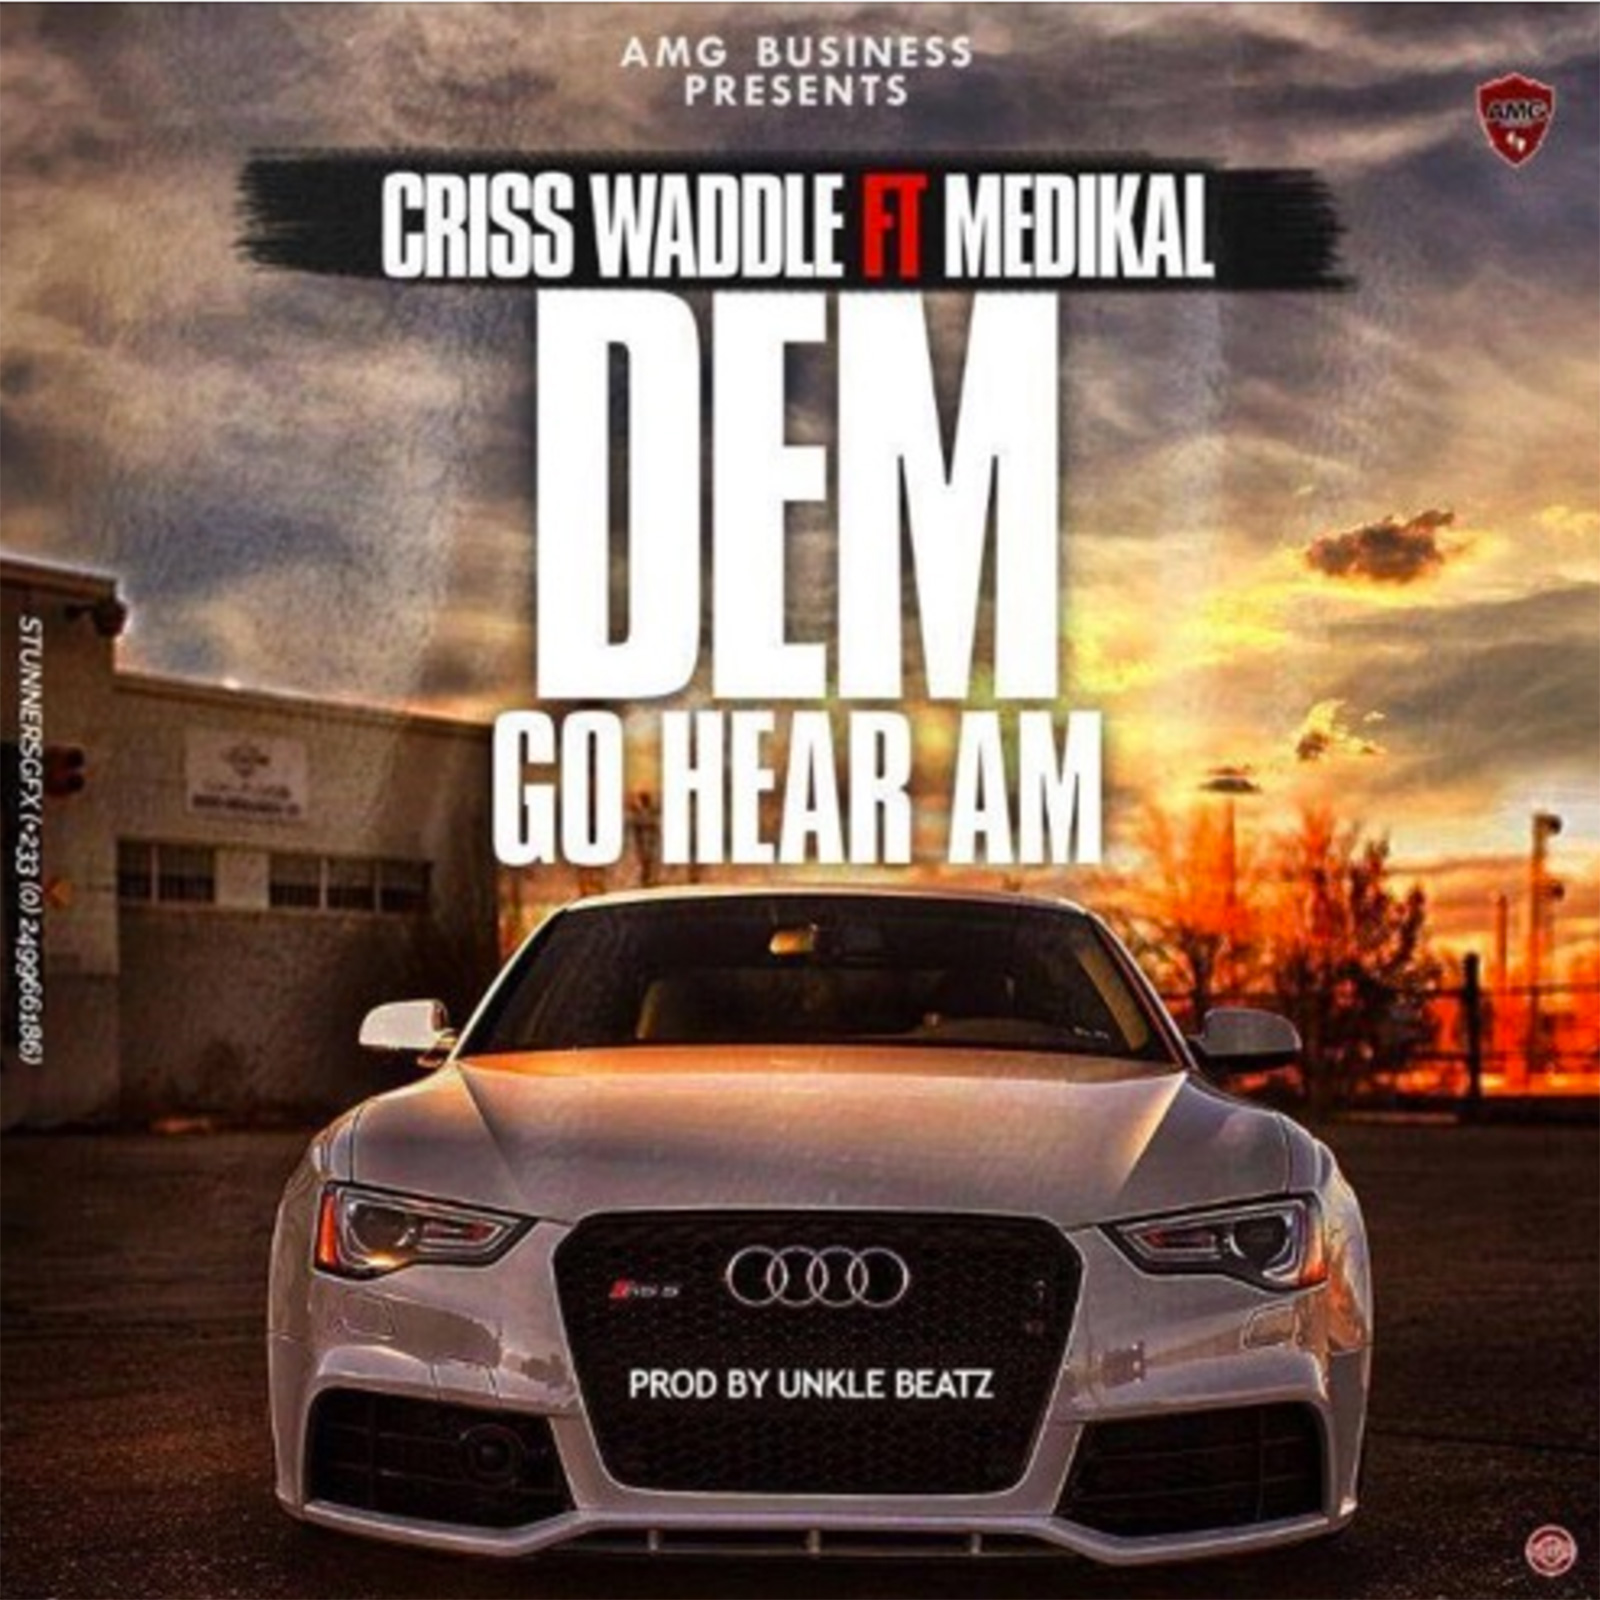 Dem Go Hear Am by Criss Waddle feat. Medikal